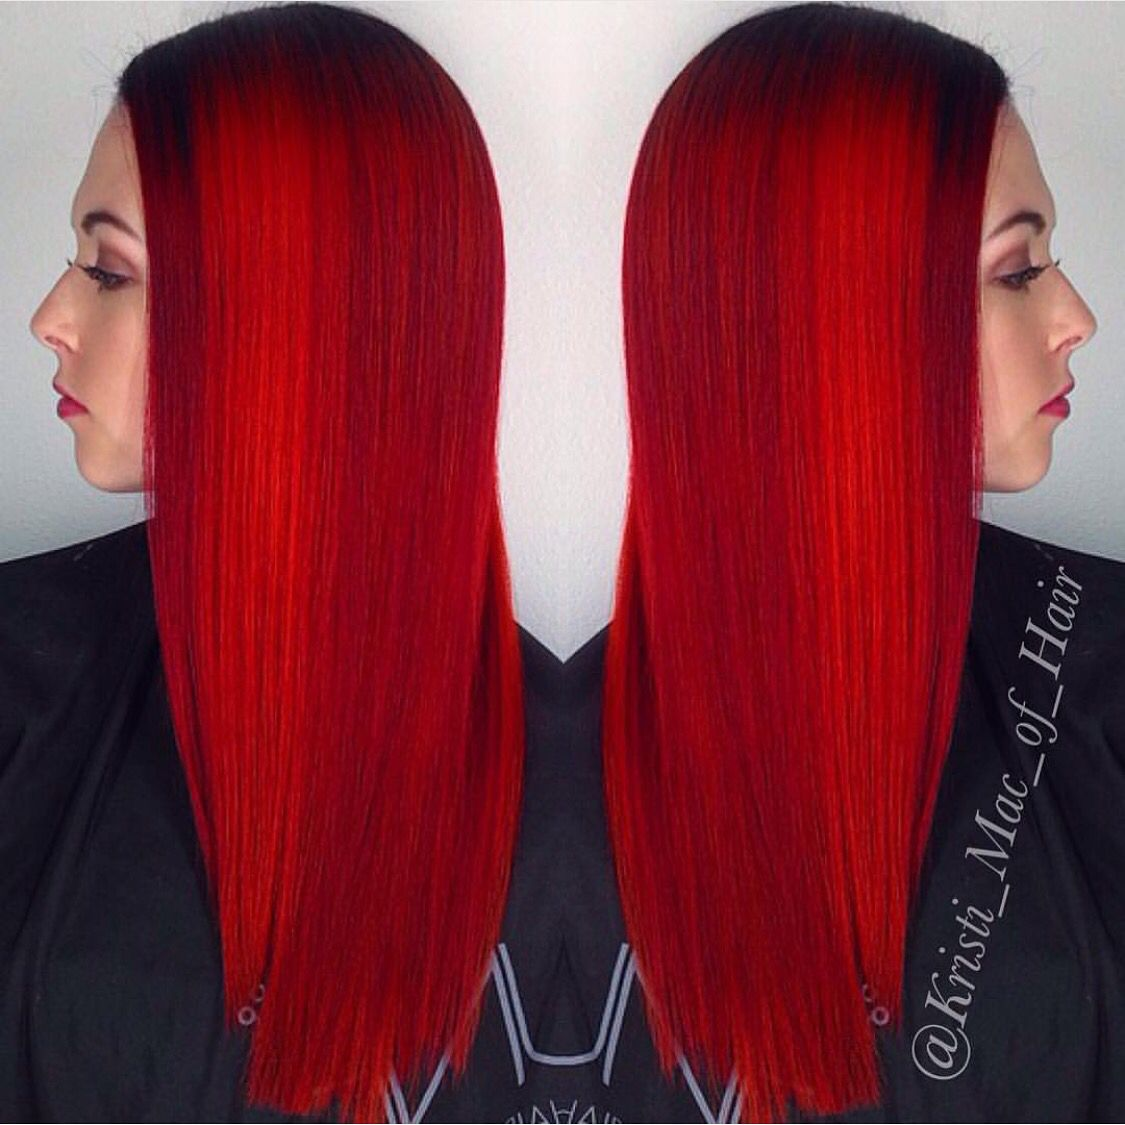 Fire Engine Red Hair Color By Kristi Mac Of Head Rush Salon